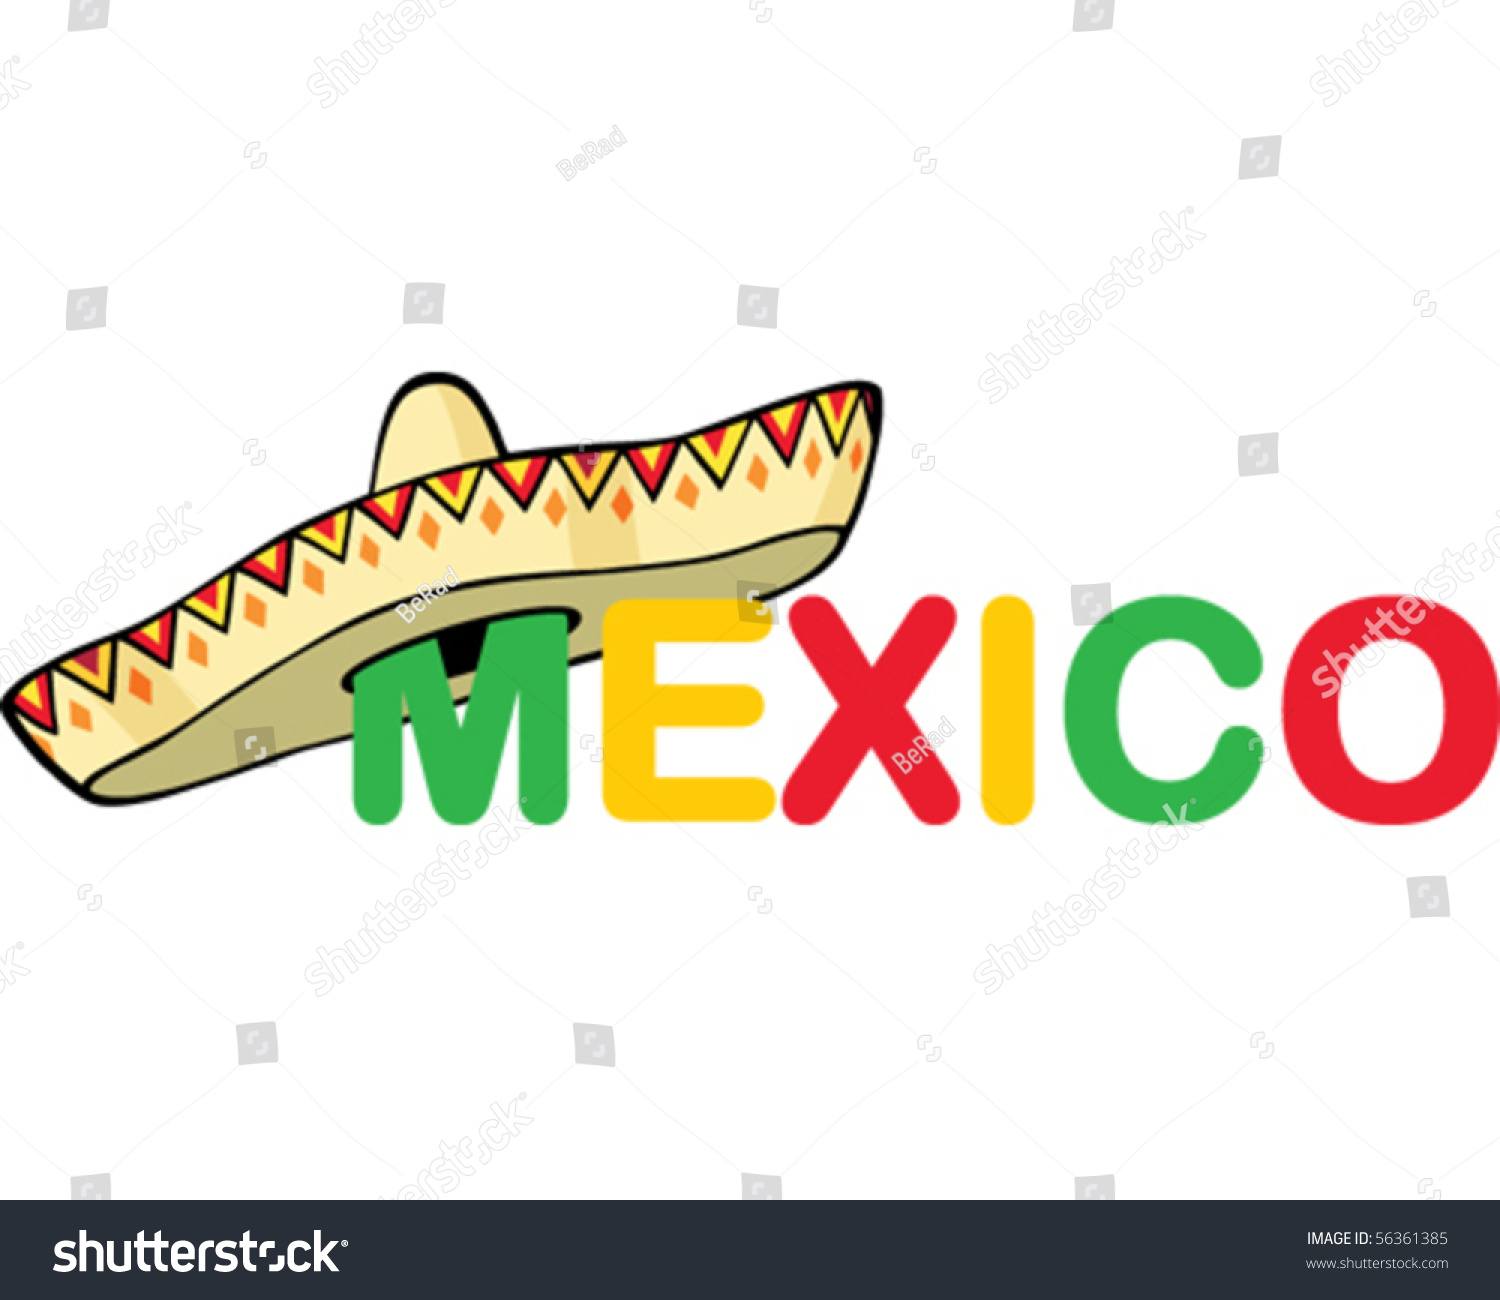 mexico word stock vector 56361385   shutterstock